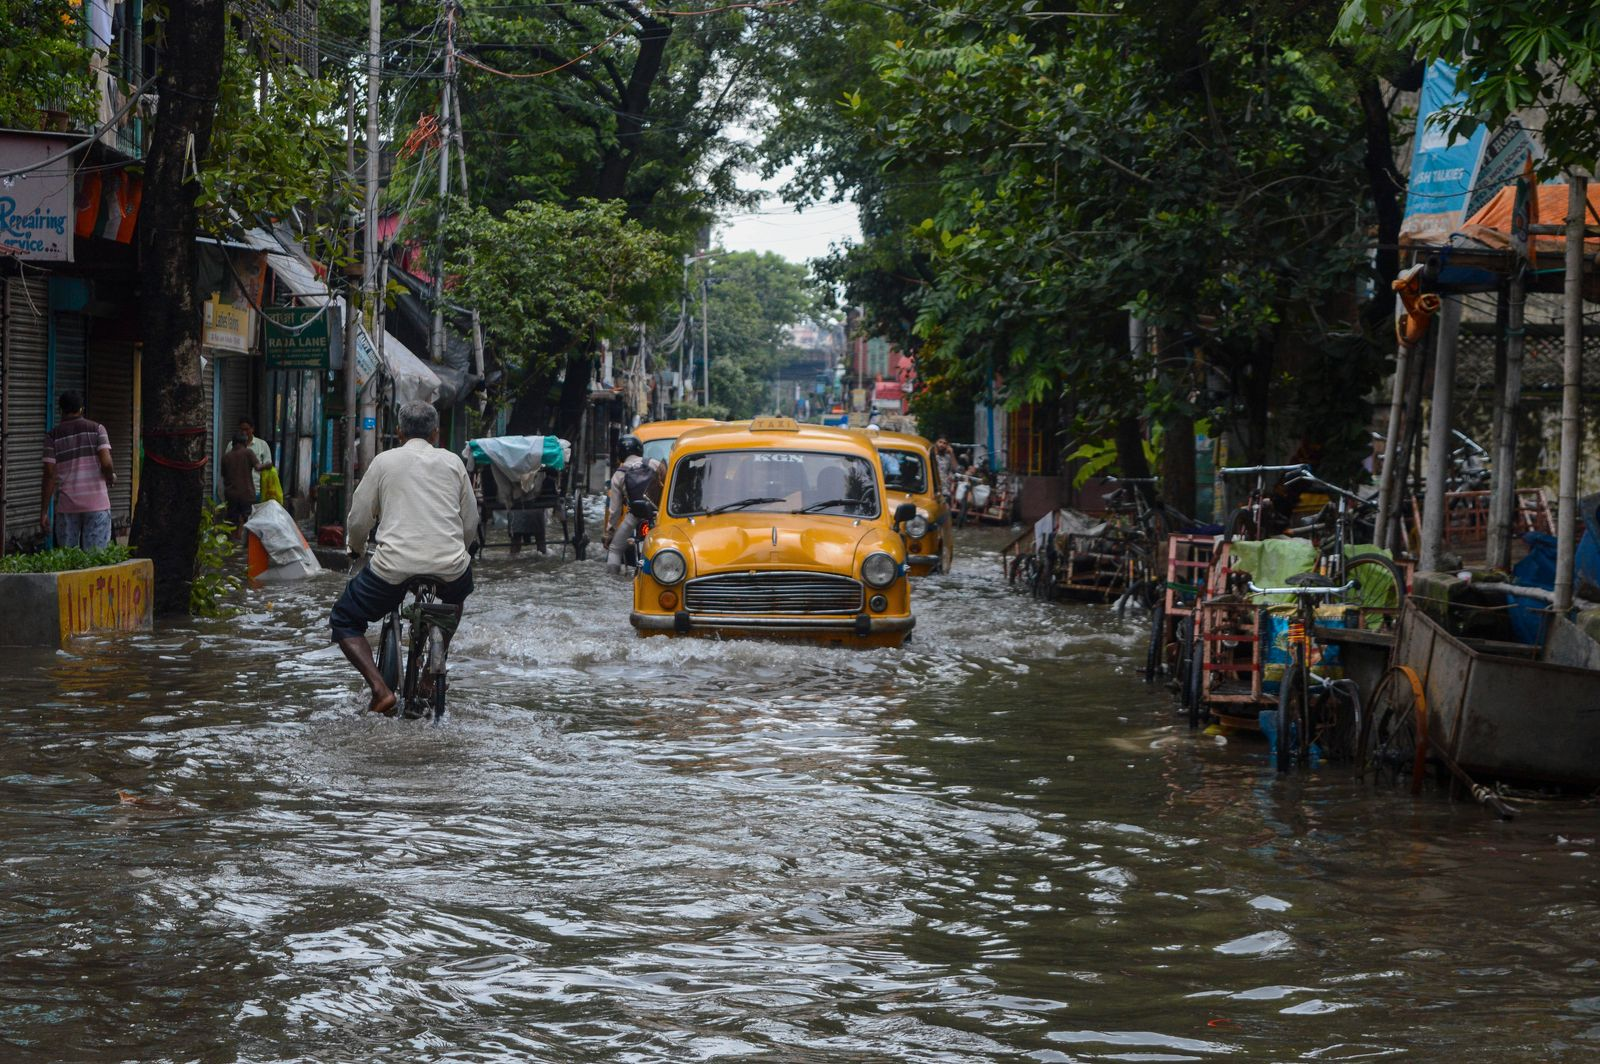 July 30, 2021, Kolkata, West bengal, India: A flooded road in Kolkata , India , on 30 July 202172 hours of continuous do